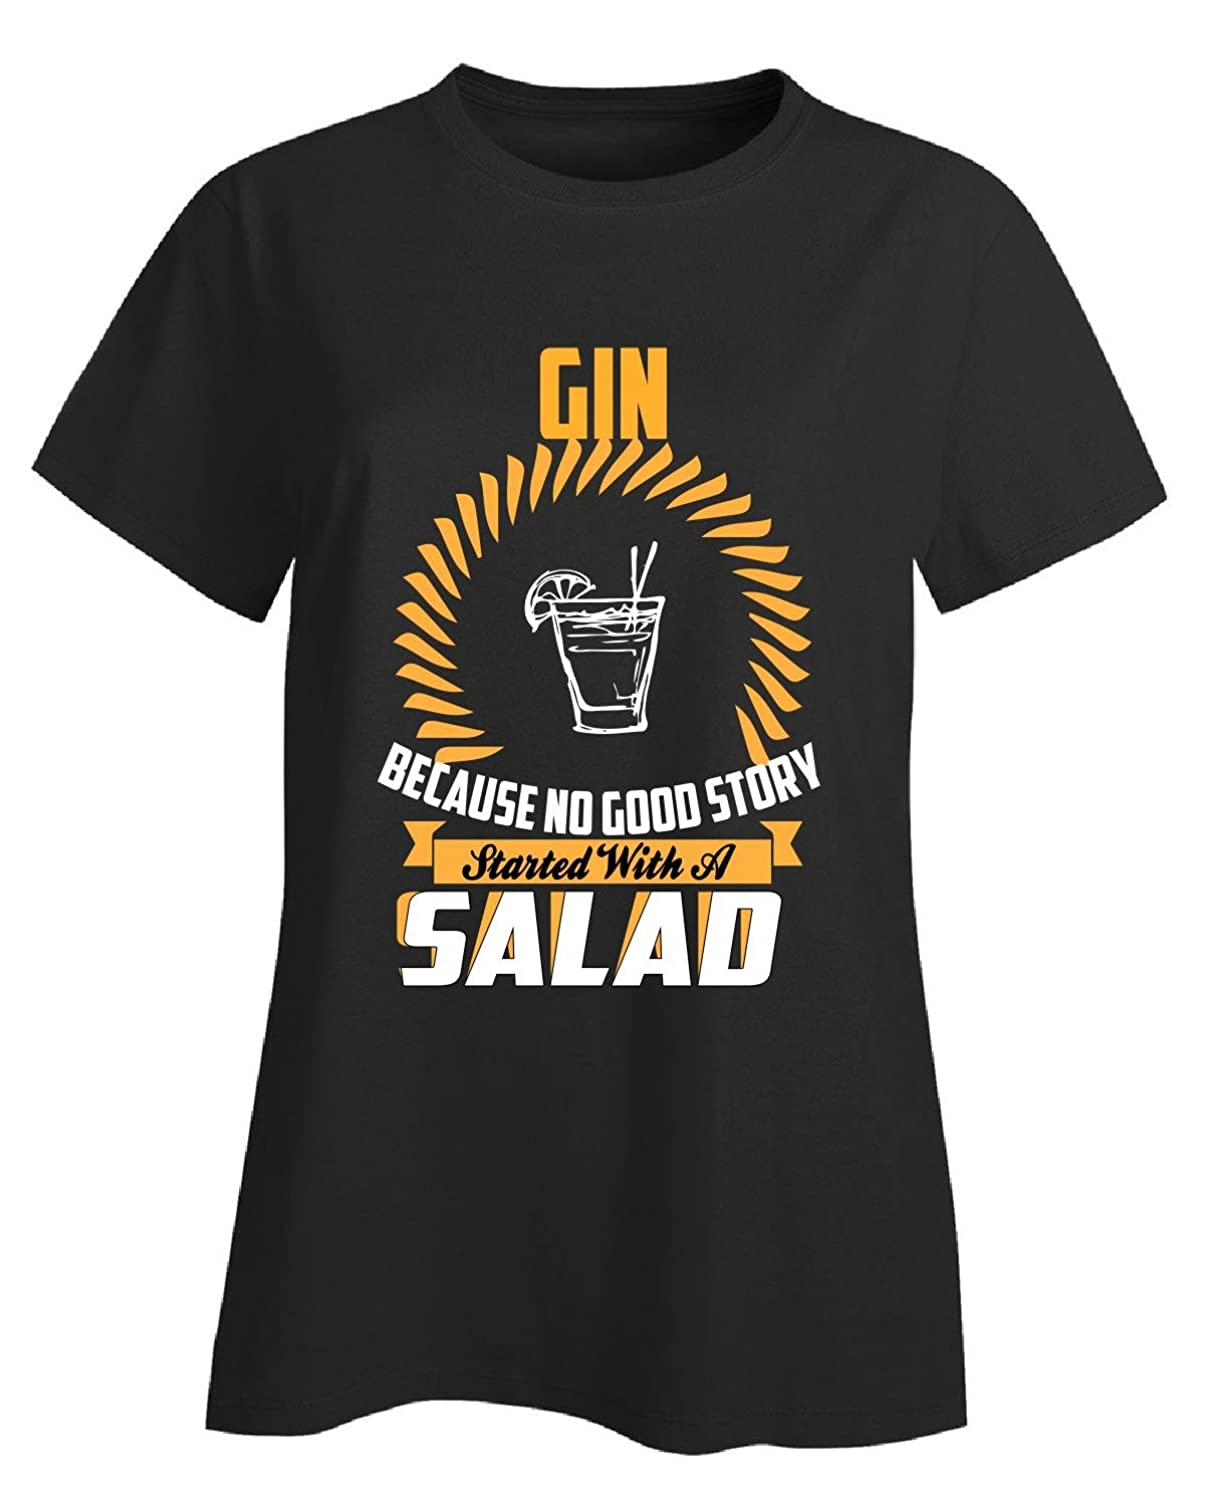 Gin Because No Good Story Starts With A Salad - Ladies T-shirt